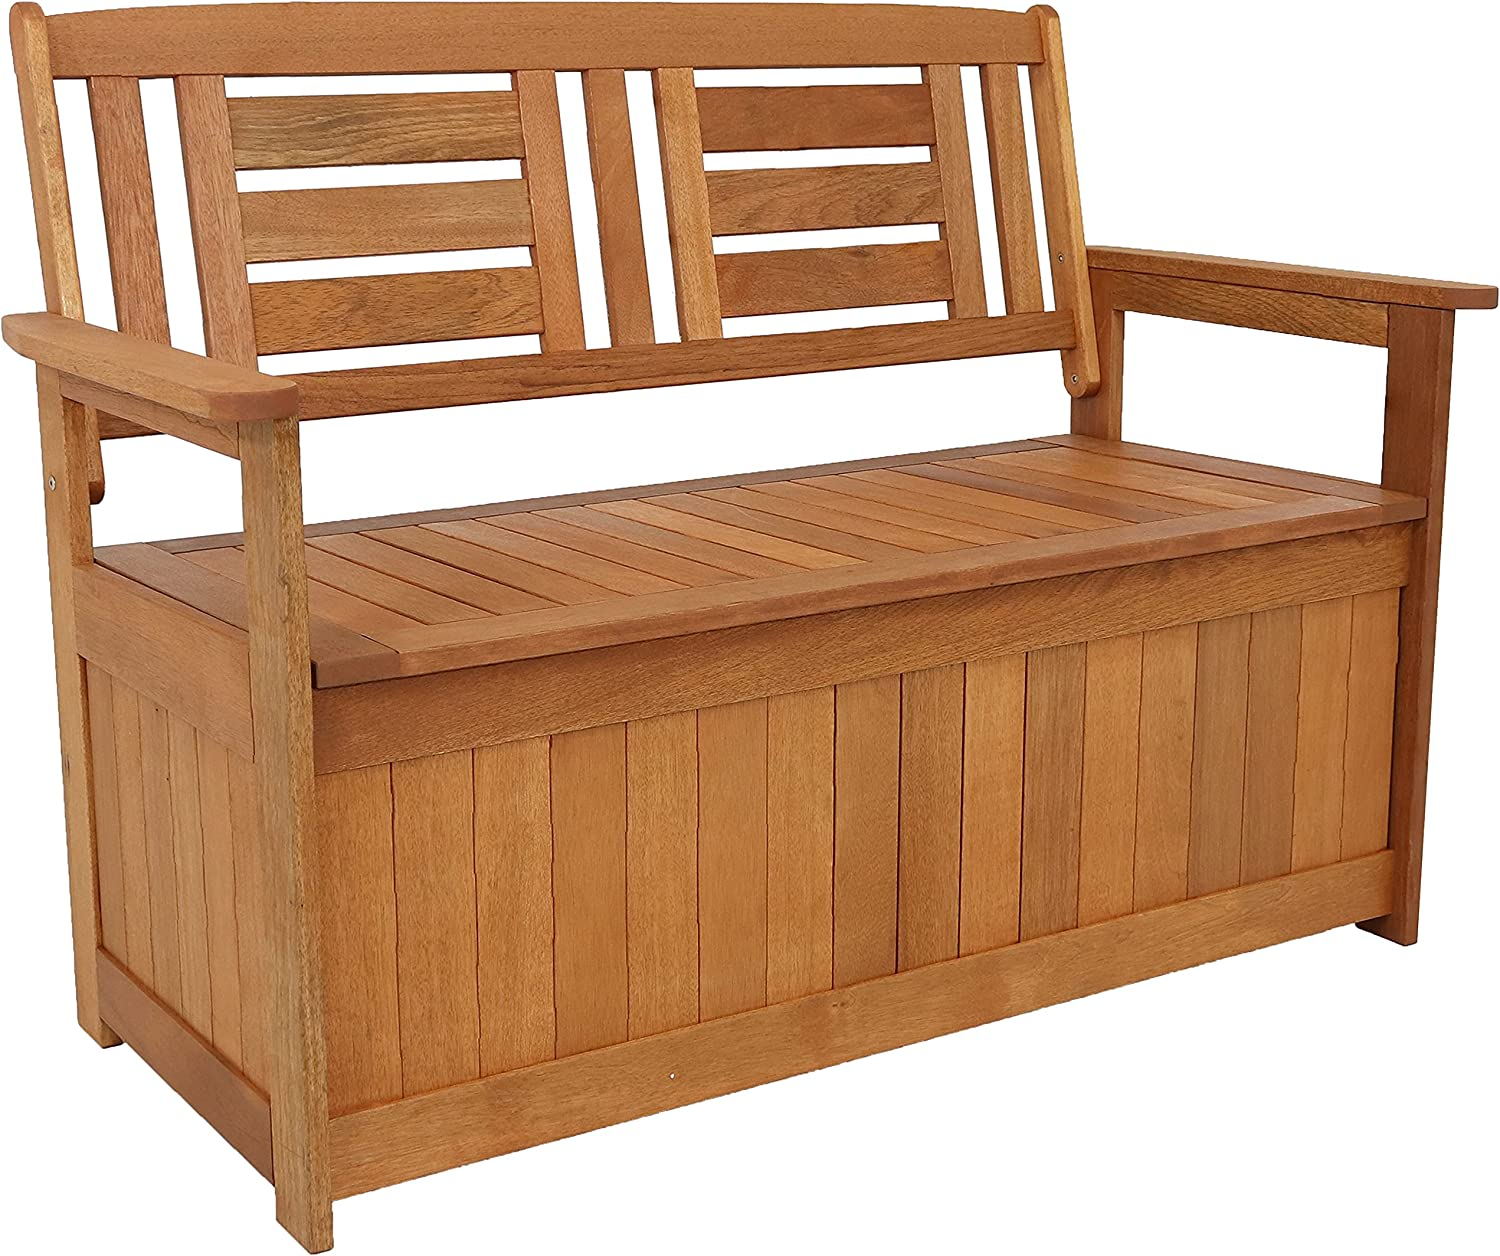 Sunnydaze Meranti Wood Outdoor Storage Bench with Teak Oil Finish - Outside Furniture Seating for Patio, Garden, Deck, Porch and Balcony - Backyard Yard and Lawn Organizer - 51-Inch